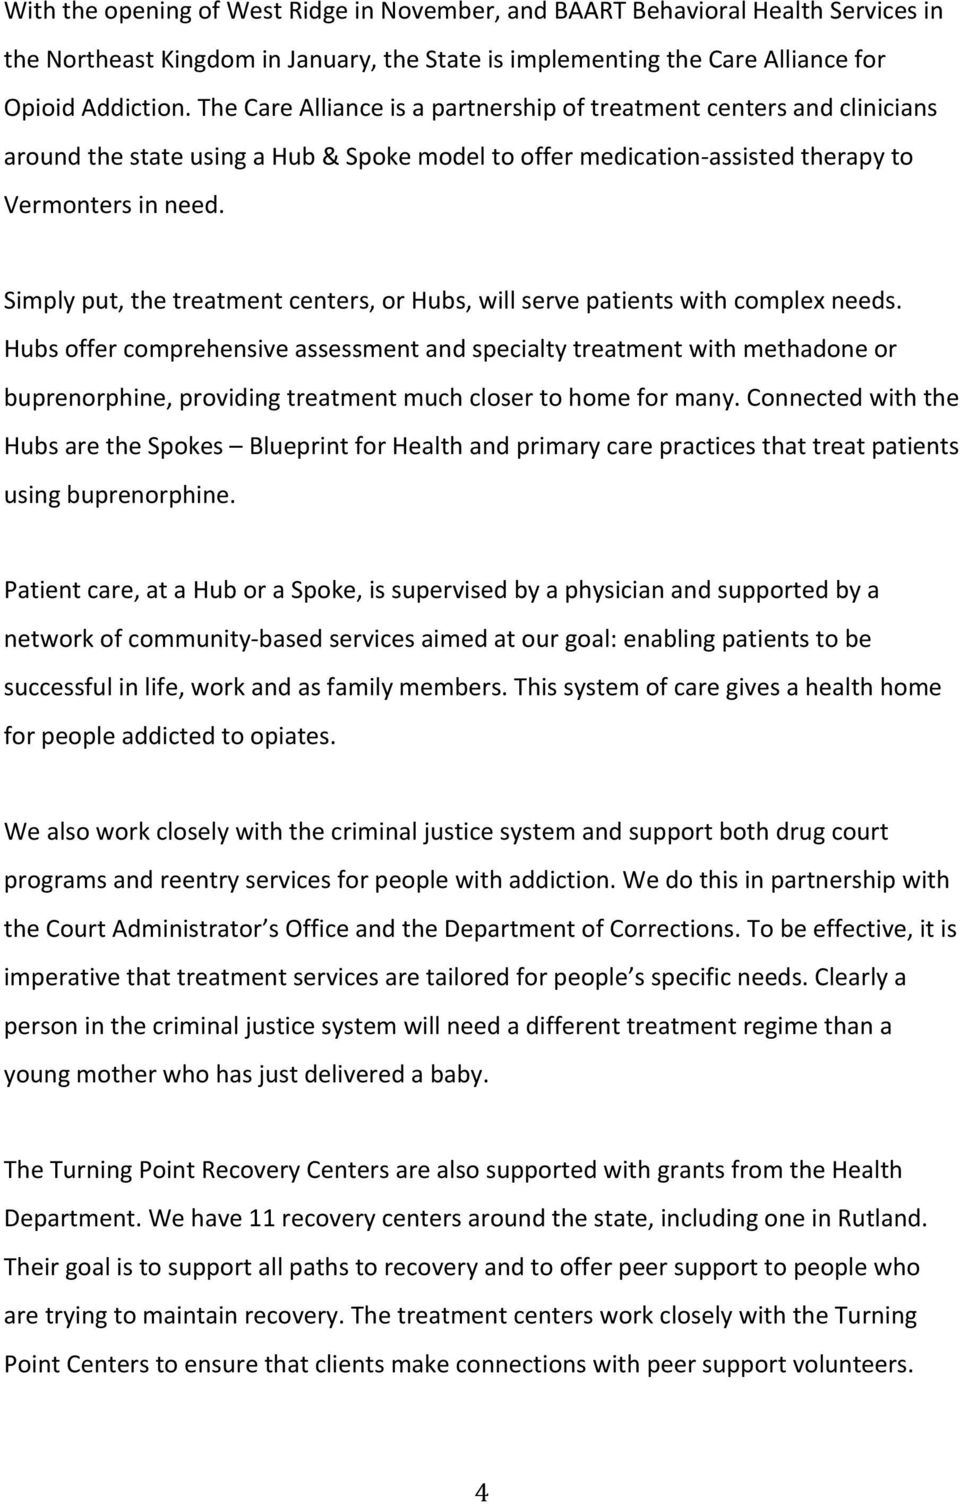 Simply put, the treatment centers, or Hubs, will serve patients with complex needs.